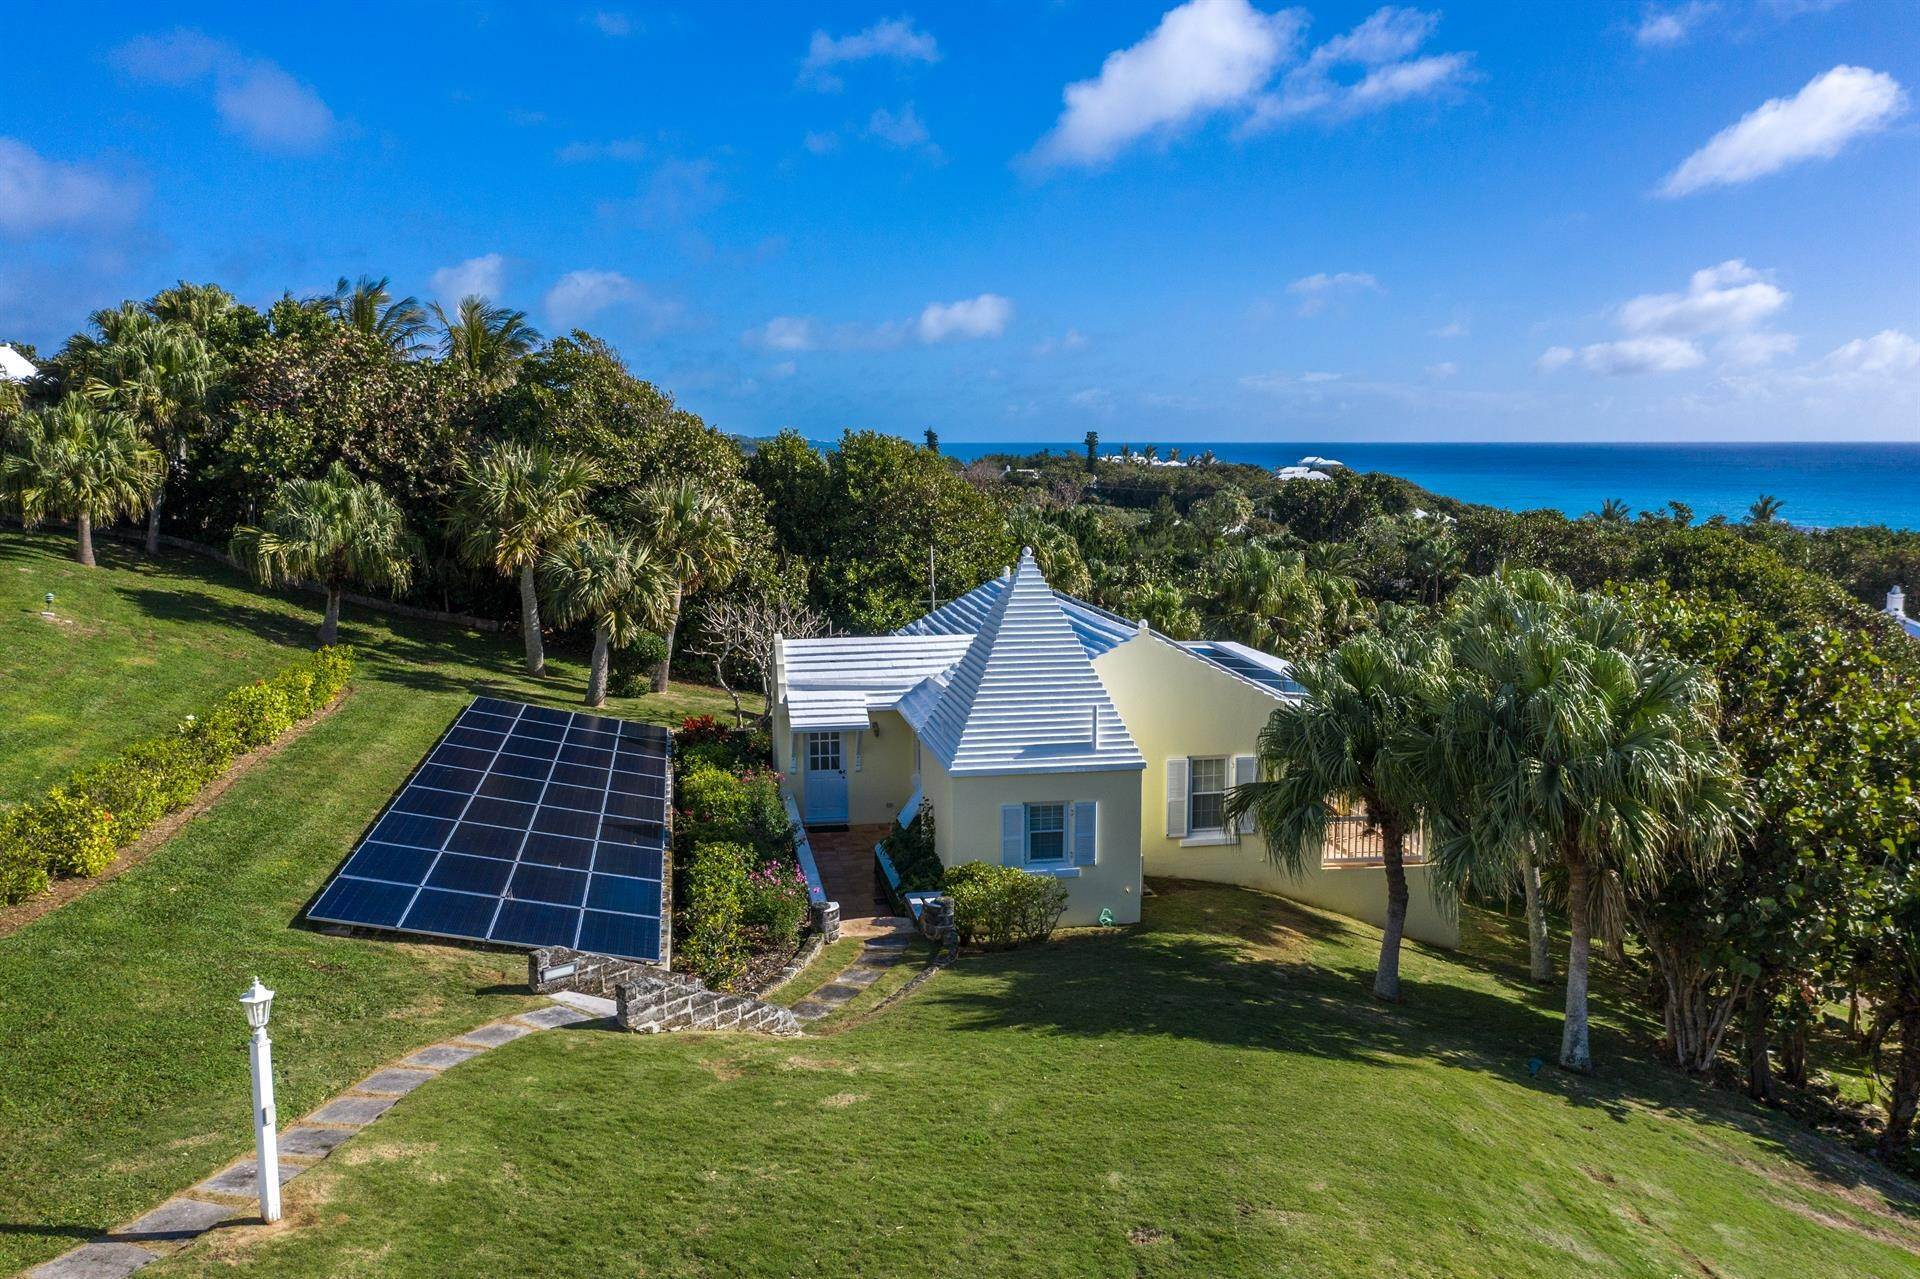 34. Waterfront Property for Sale at Agapanthus On Grape Bay Agapanthus On Grape Bay, 11 Inglewood Lane,Bermuda – Sinclair Realty